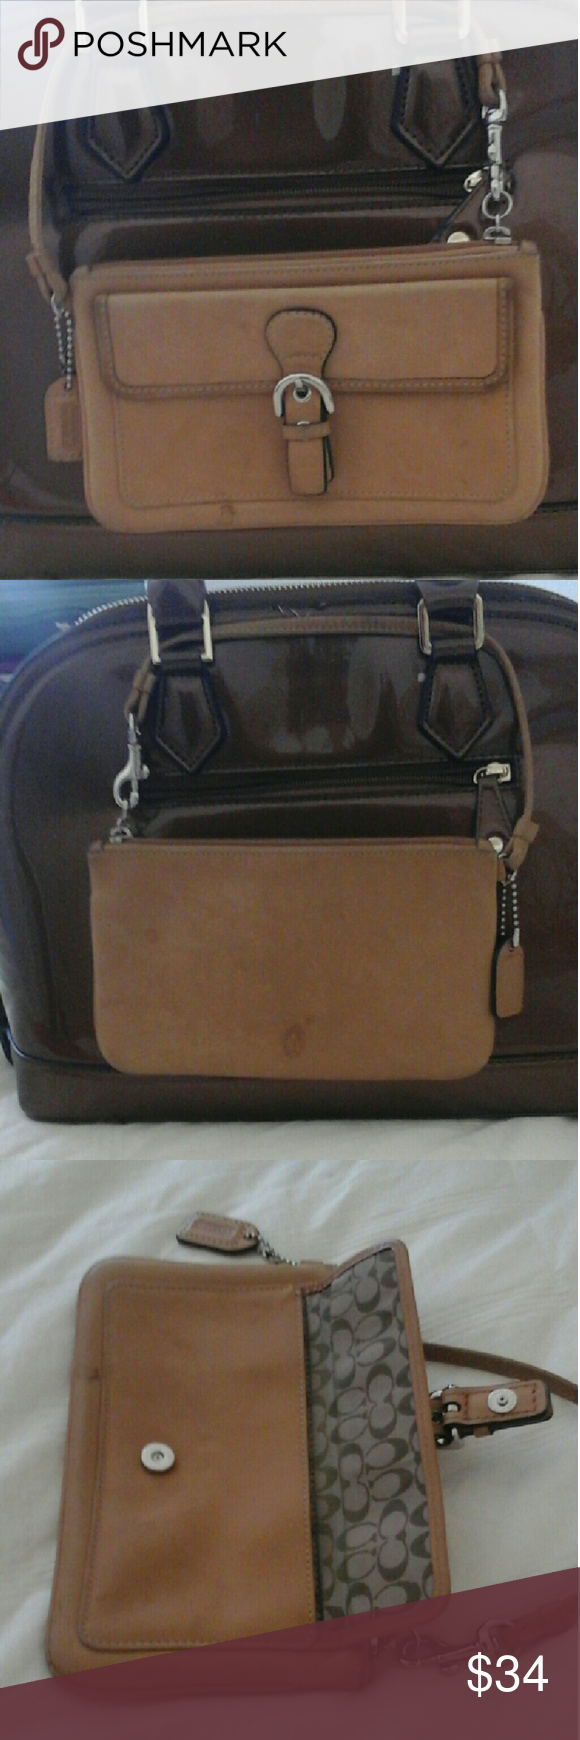 Pre-loved Coach Tan Leather Wristlet There are markings due to the item getting wet. Some good old leather cleaner just may work!! Super soft leather too! $30 because of the leather...ty for looking!! Coach Bags Clutches & Wristlets